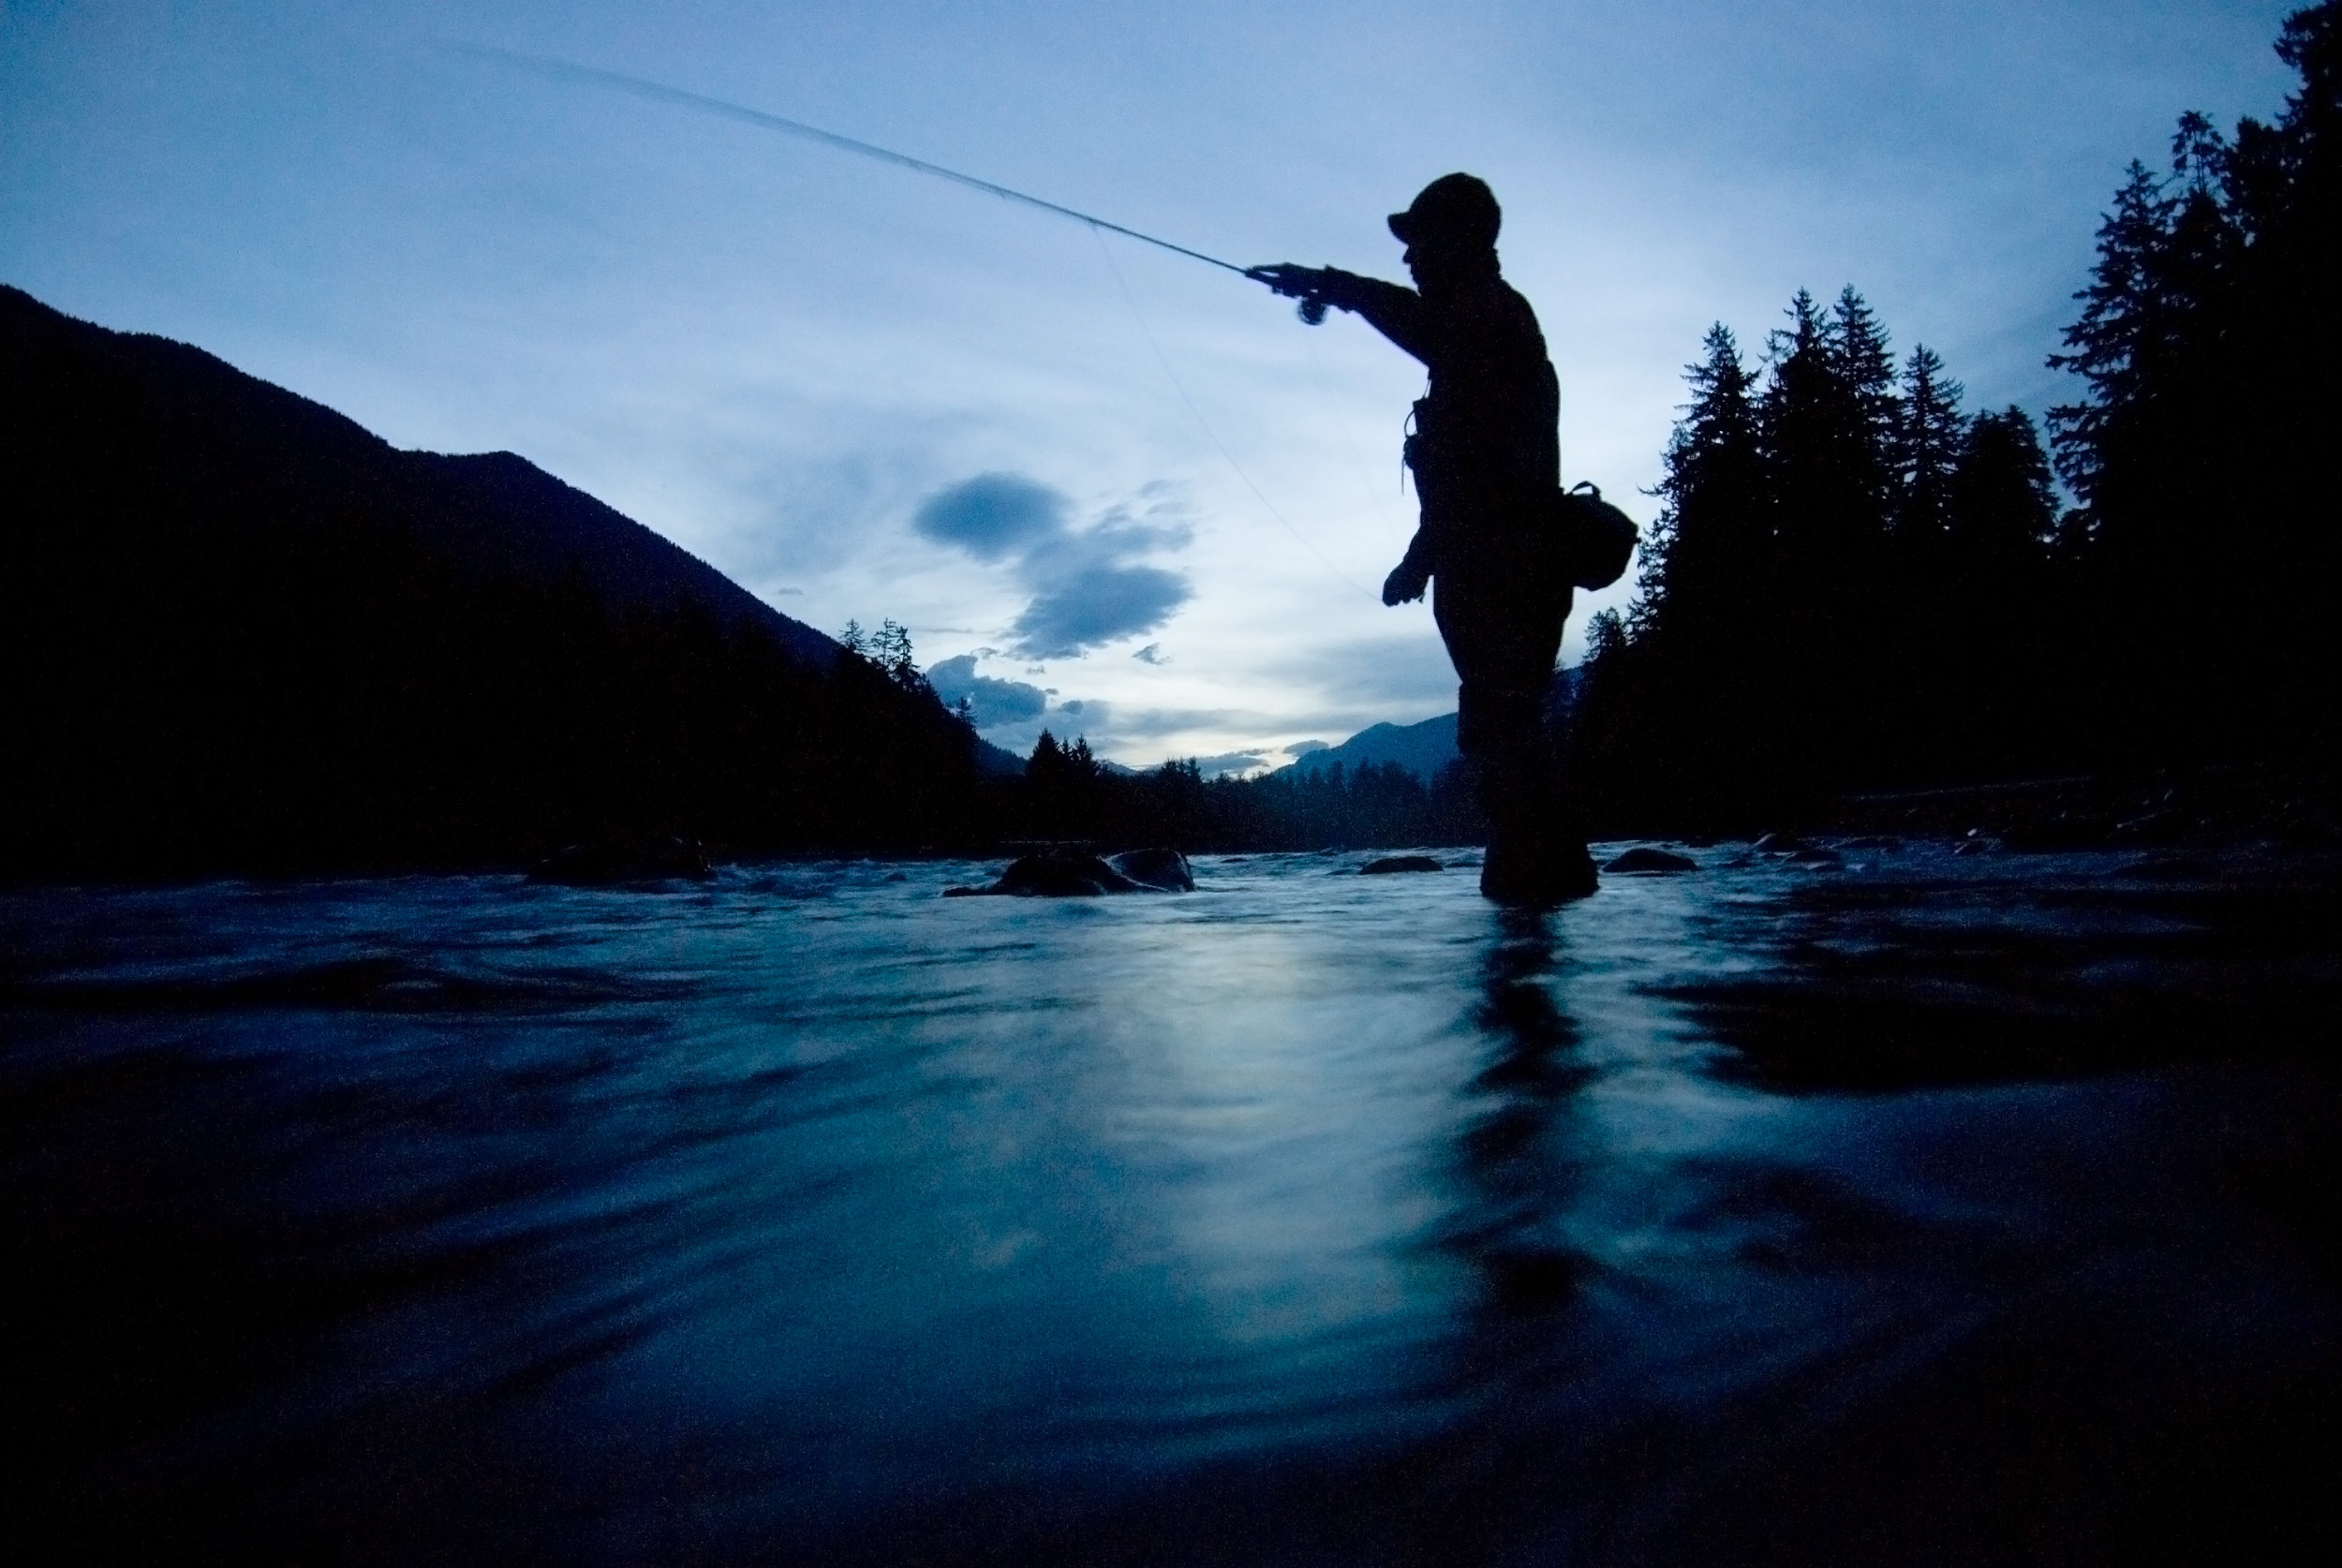 Fishing guide Shannon Carroll fishing at dawn for steelhead on the Hoh River. Photo by Bridget Besaw.